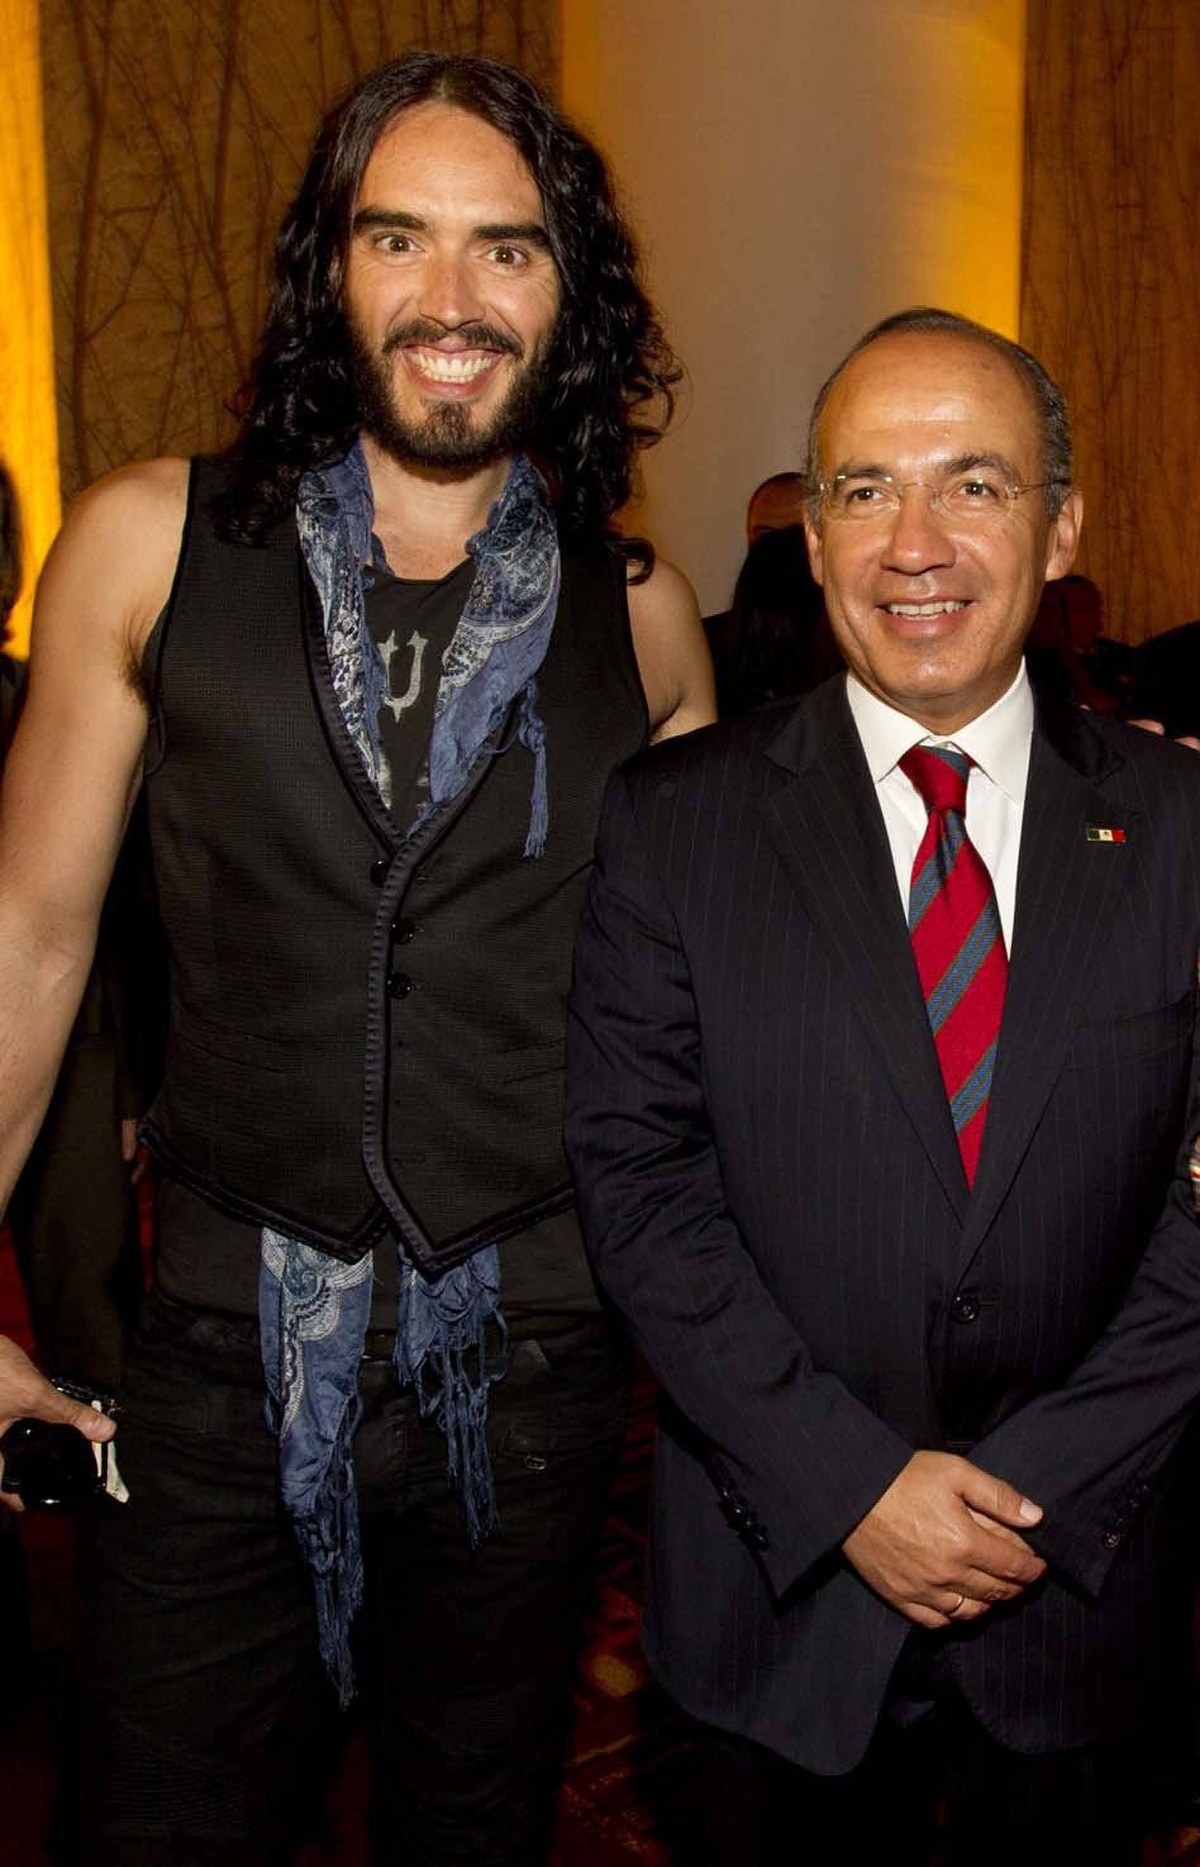 Russell Brand (left) photo-bombs the president of Mexico, Felipe Calderon, at an event in Los Angeles last week.